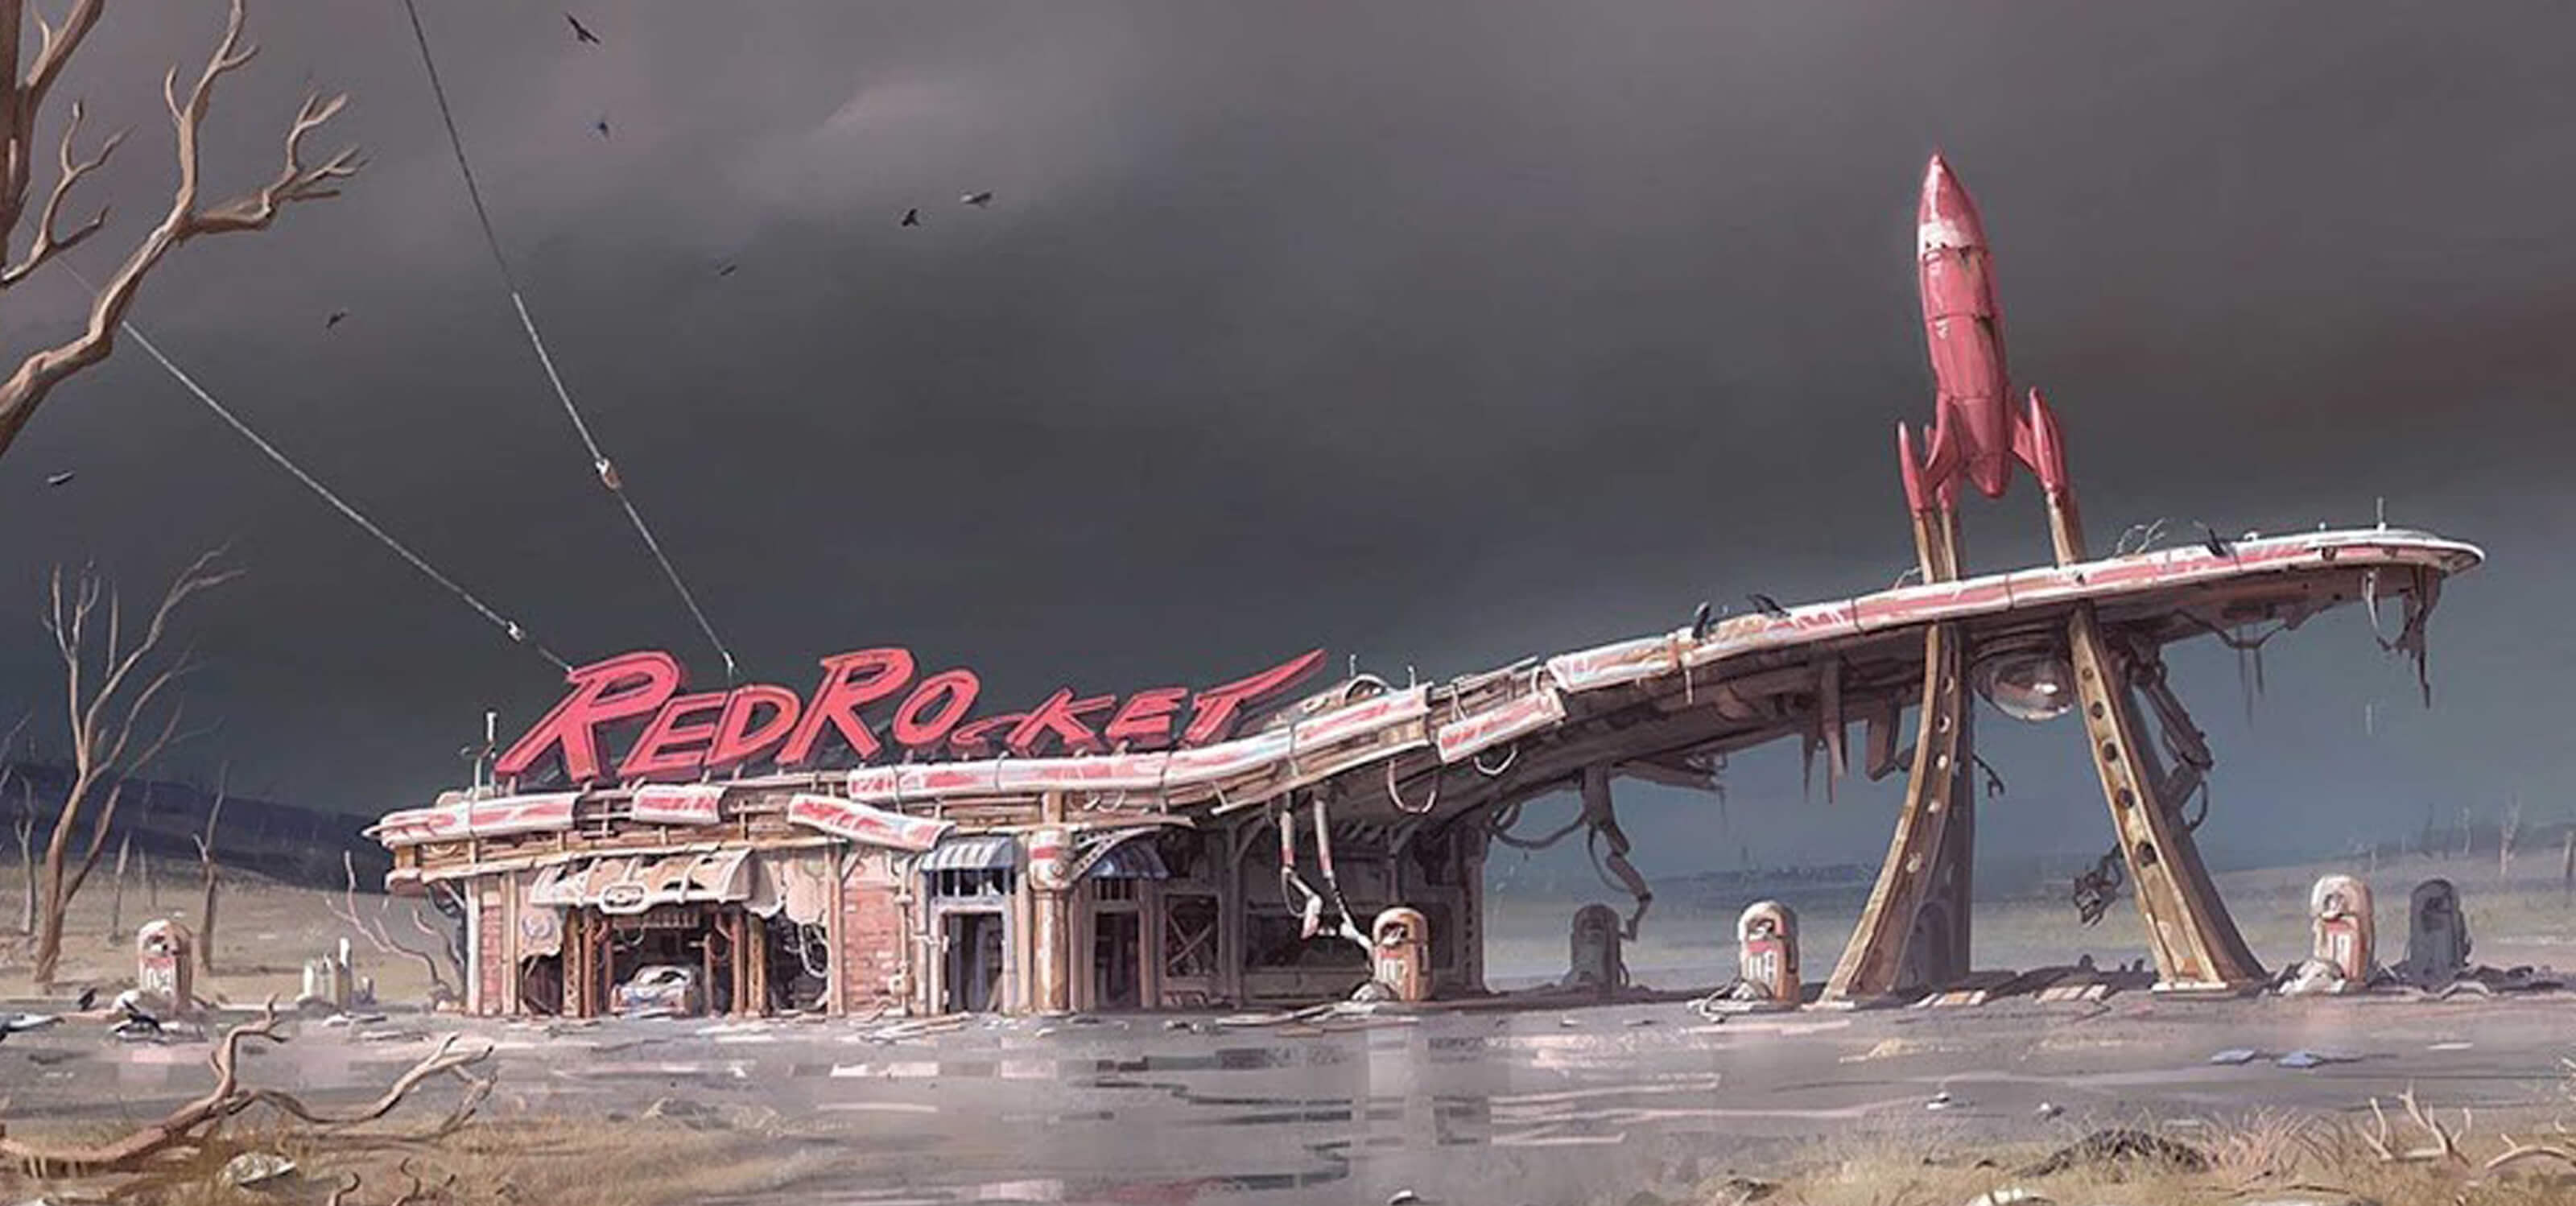 Illustration of the Red Rocket gas station in the post-apocalyptic wasteland of Fallout 4 by DigiPen grad Ilya Nazarov